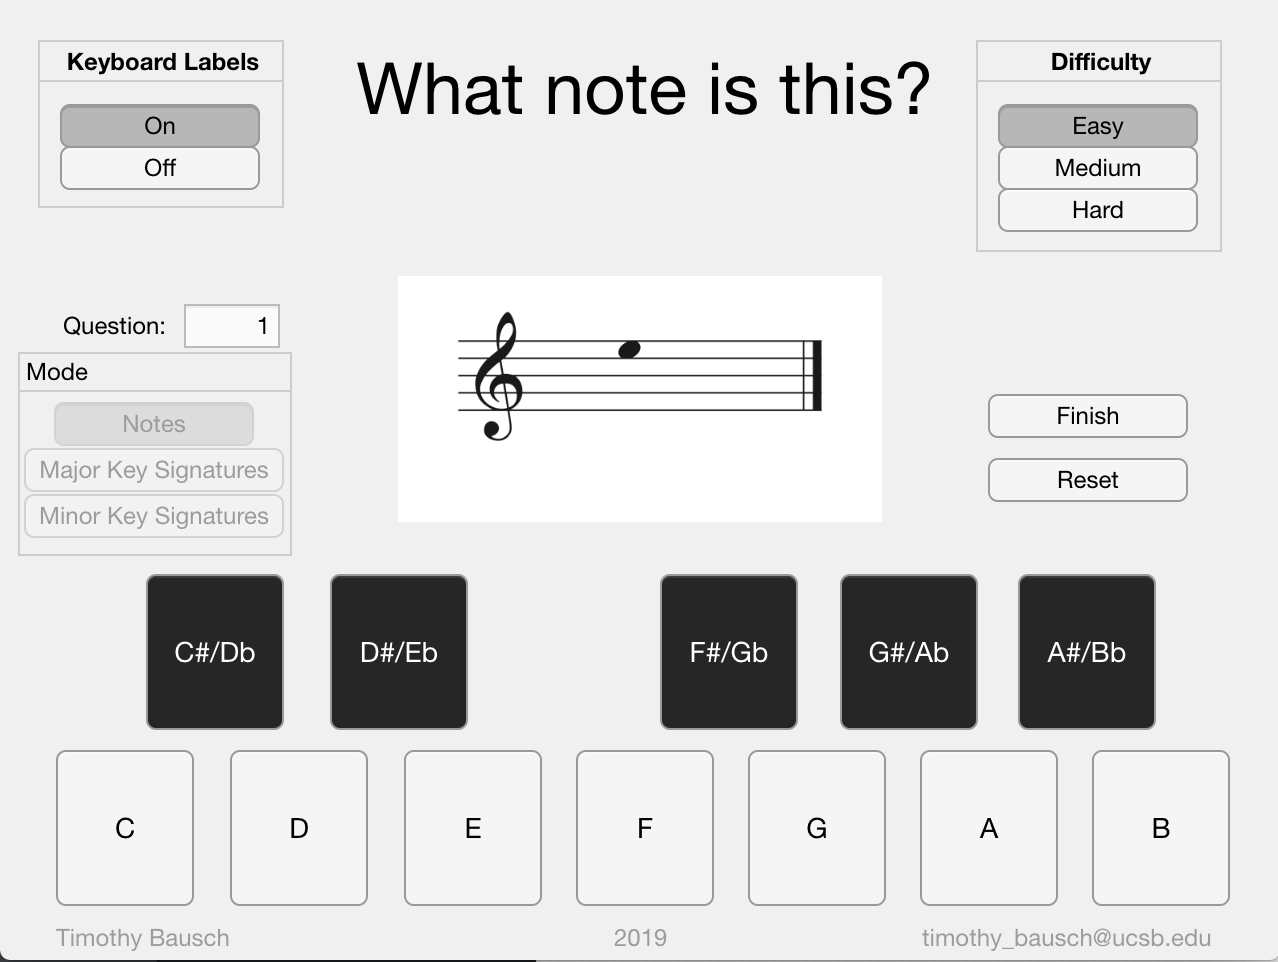 Music Identifier - Please click here (note, this will take you to the Orangedox website) to download this application to your computer and test your ability to identify musical notes and major and minor key signatures!Note: You have the option to adjust the difficulty of the app! The easy difficulty keeps the image visible indefinitely, the medium difficulty hides the image after four seconds, and the hard difficulty hides the image after one second!